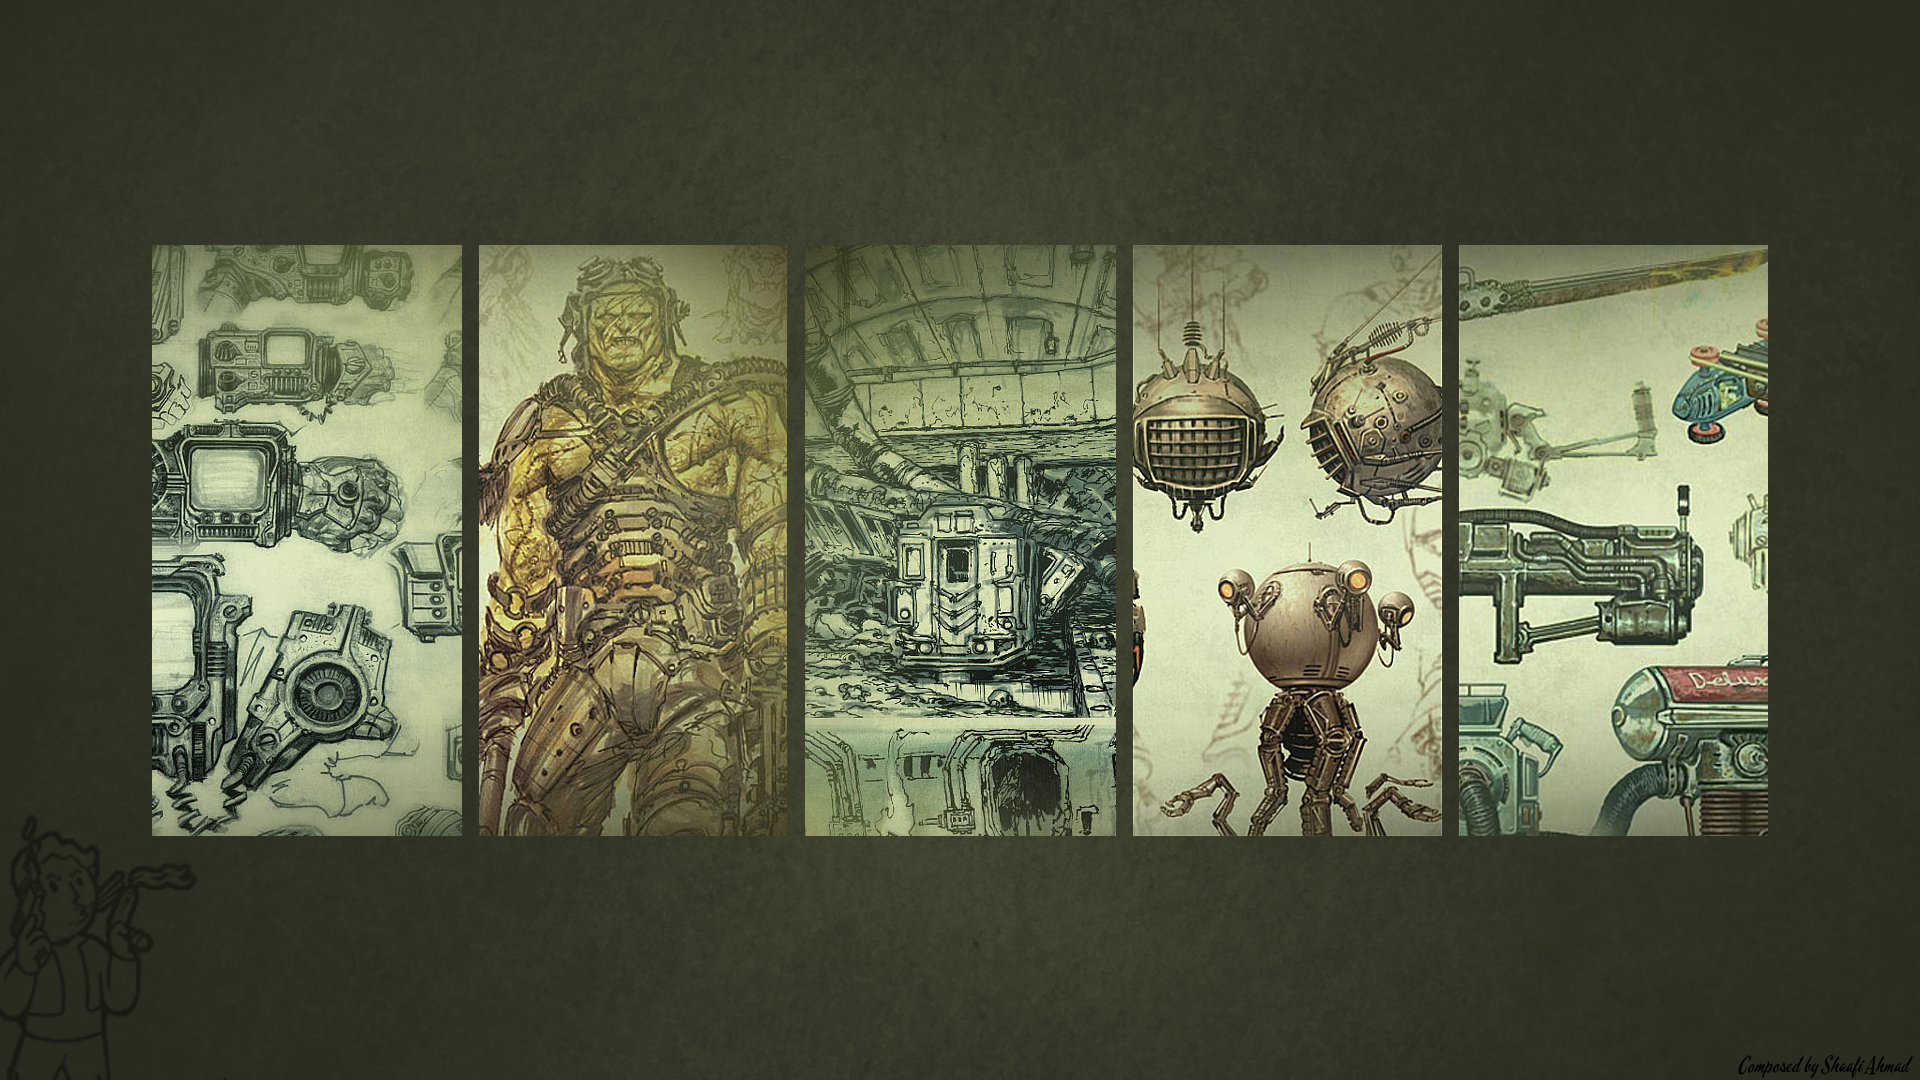 By Jared Cavallo PC.34: Fallout Backgrounds&Backgrounds